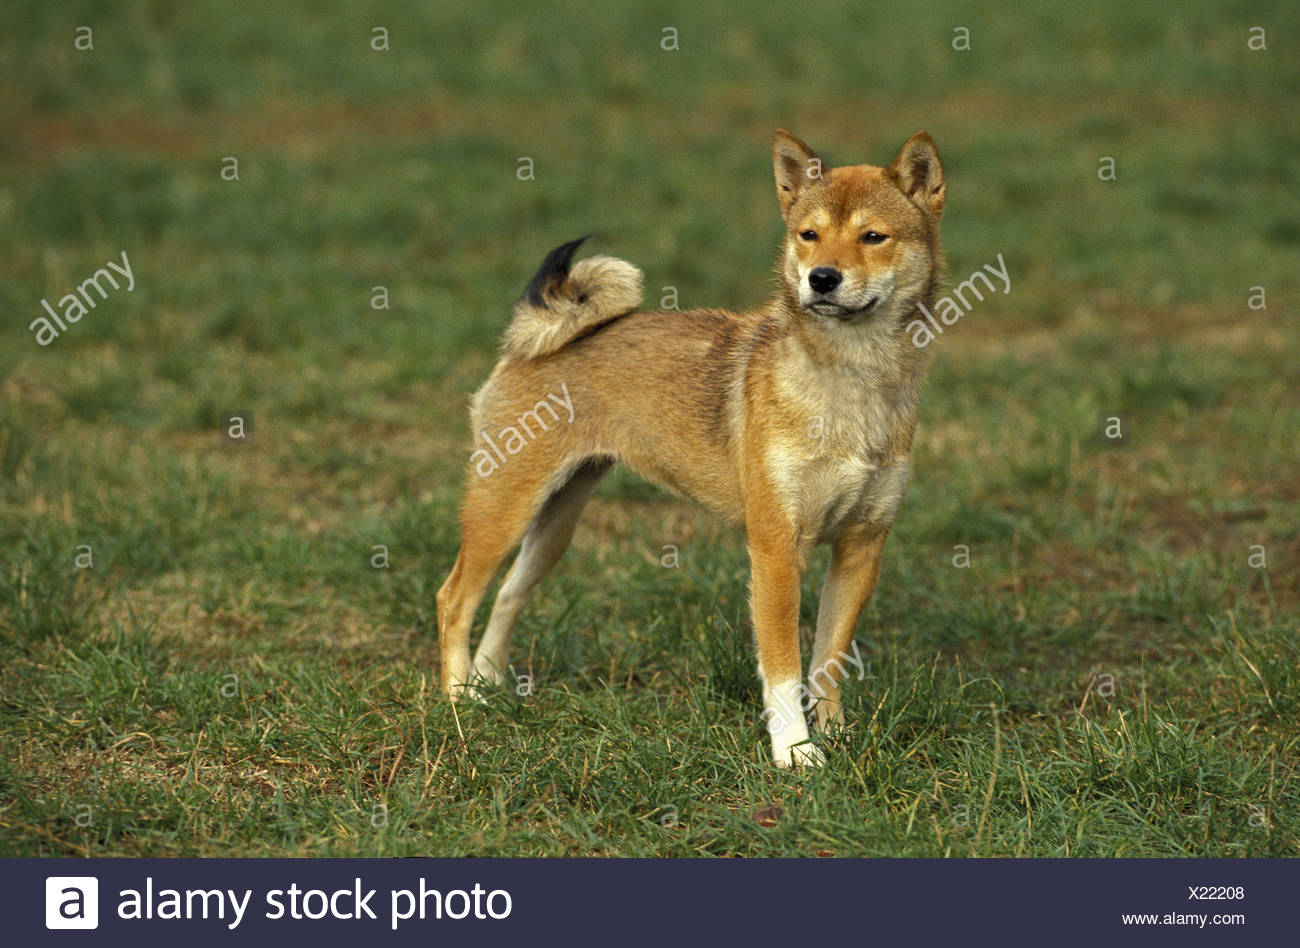 Shiba Inu Dog on Grass - Stock Image